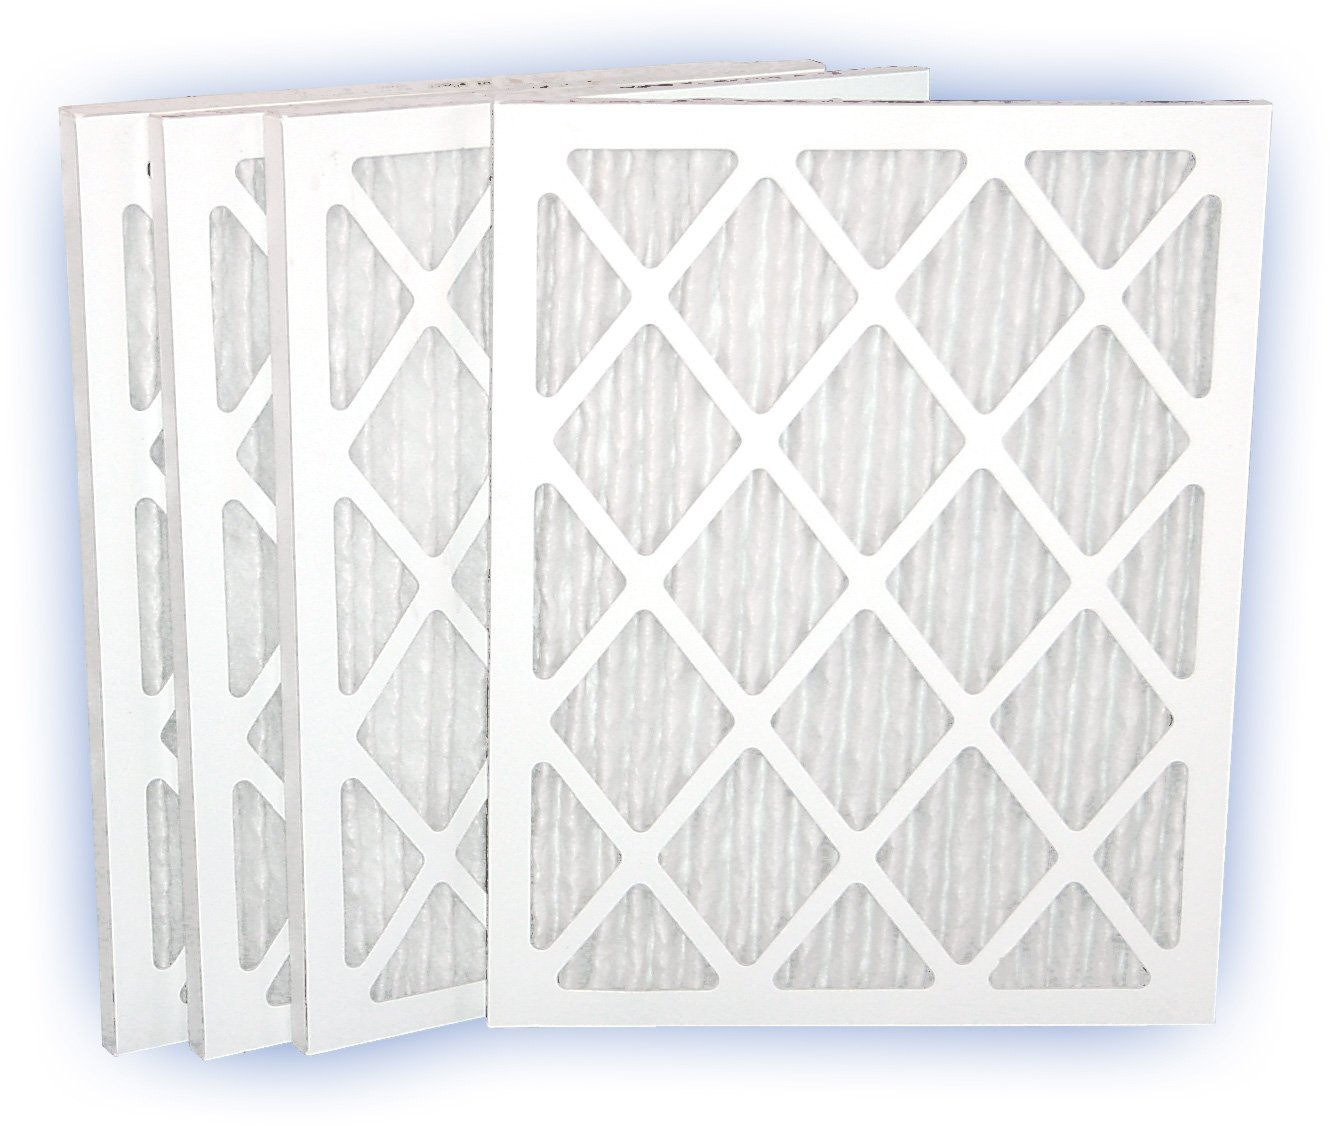 22 x 22 MERV 9 DustLok 3-ply Panel Filter